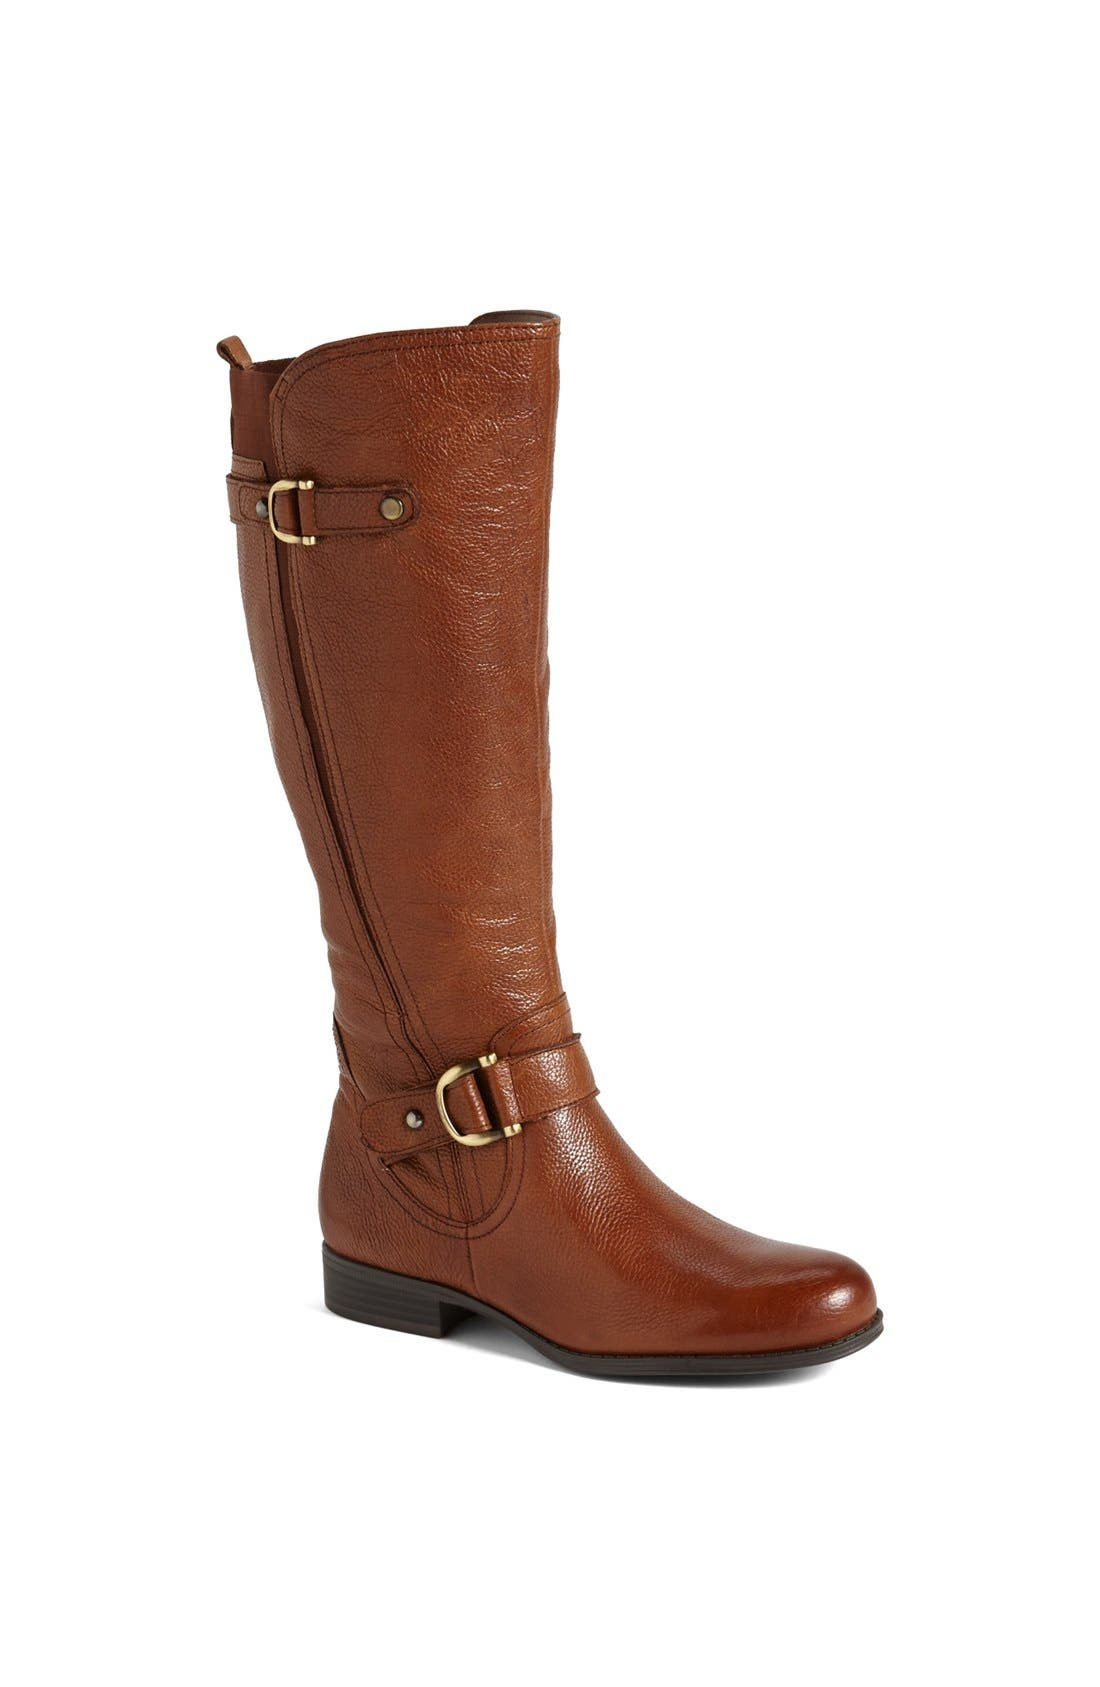 Alternate Image 1 Selected - Naturalizer 'Jersey' Leather Riding Boot (Wide Calf) (Online Only)